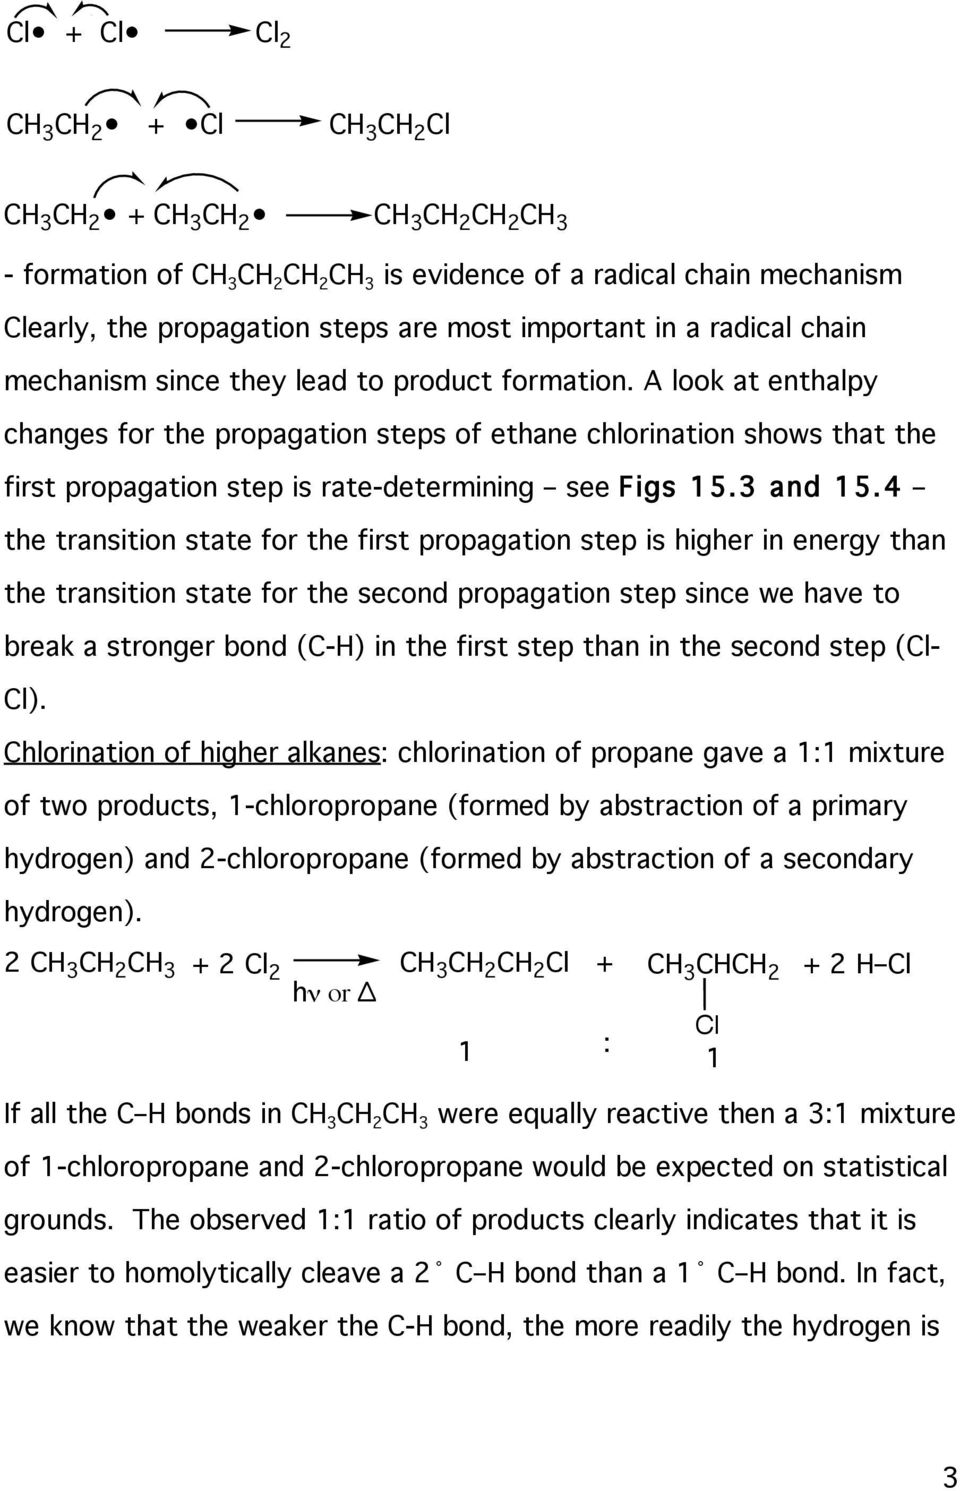 4 the transition state for the first propagation step is higher in energy than the transition state for the second propagation step since we have to break a stronger bond (C-) in the first step than